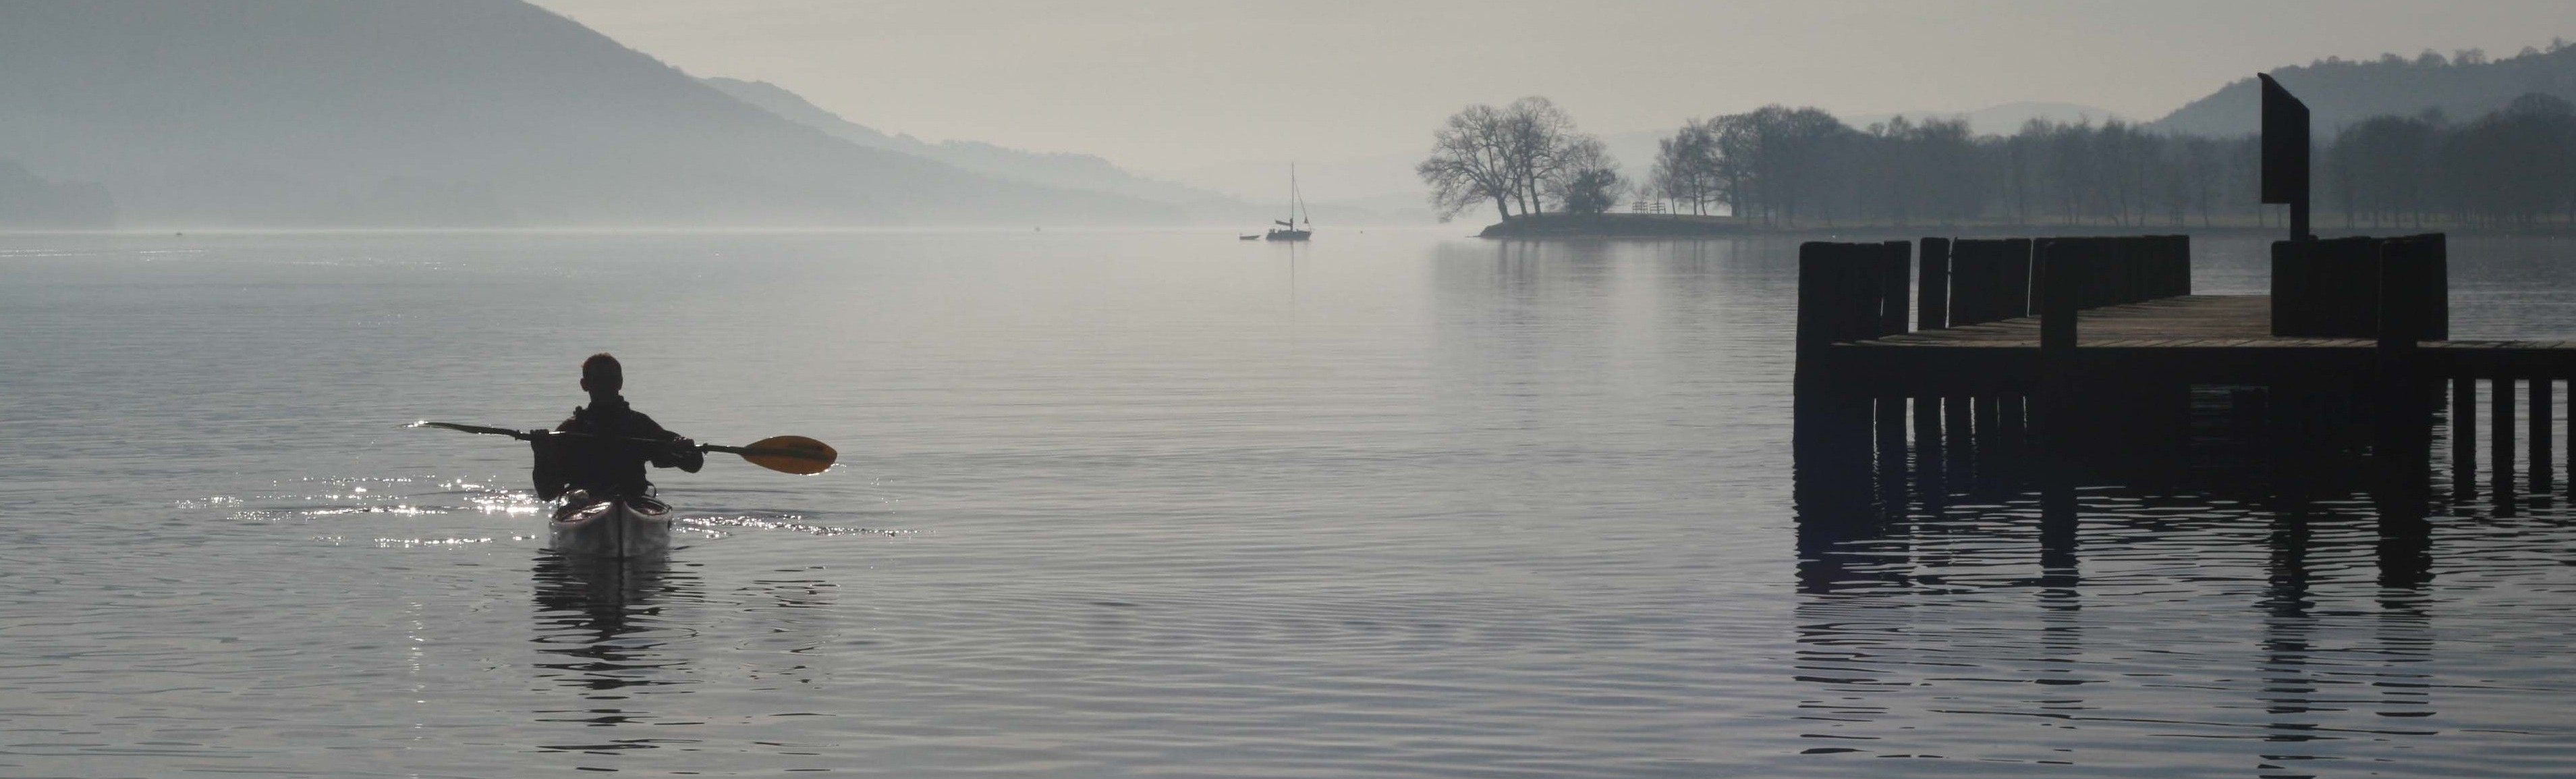 Paddling on Coniston Water